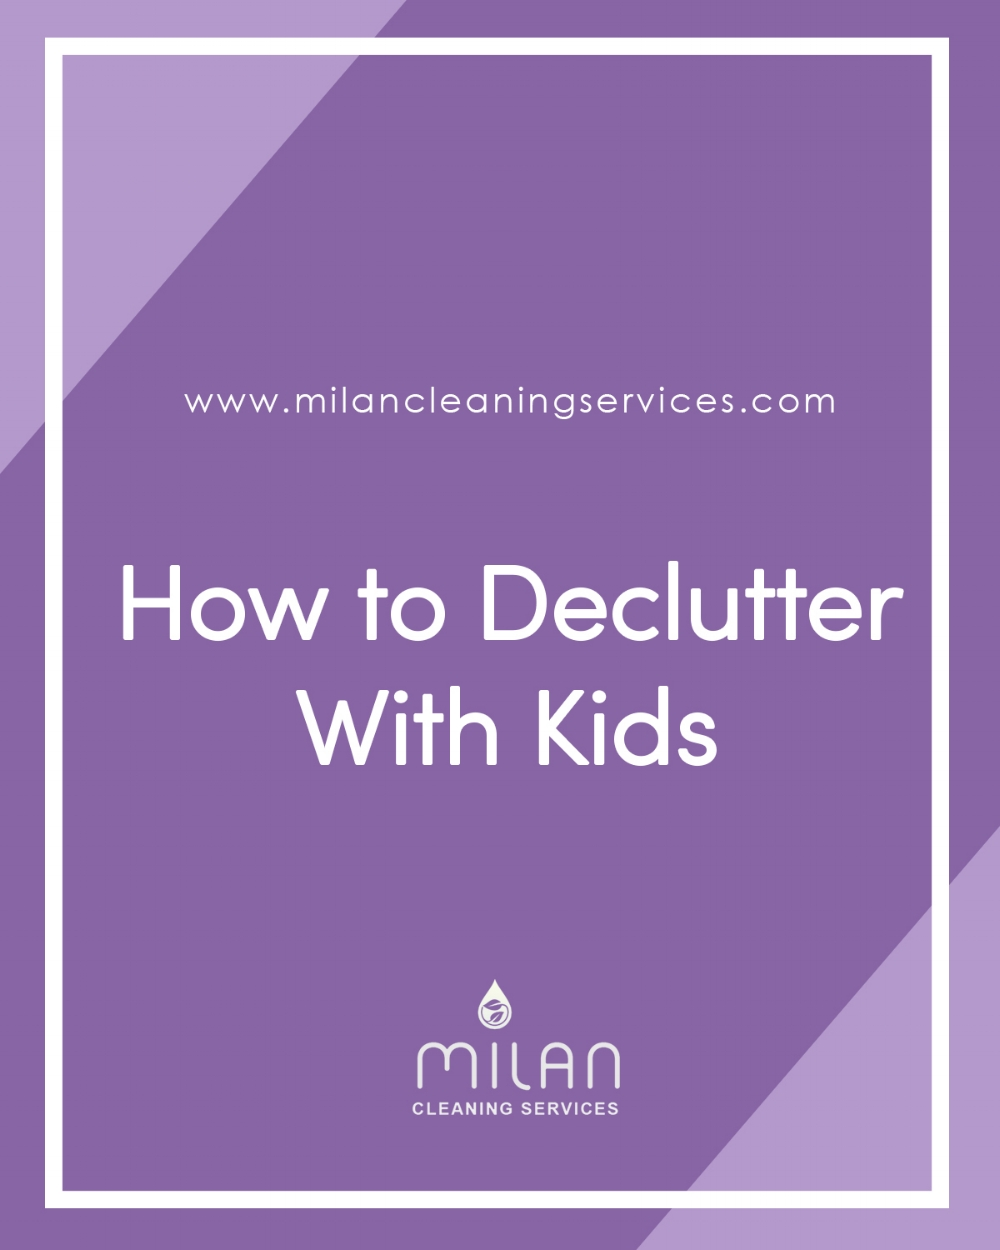 declutter-with-kids.jpg